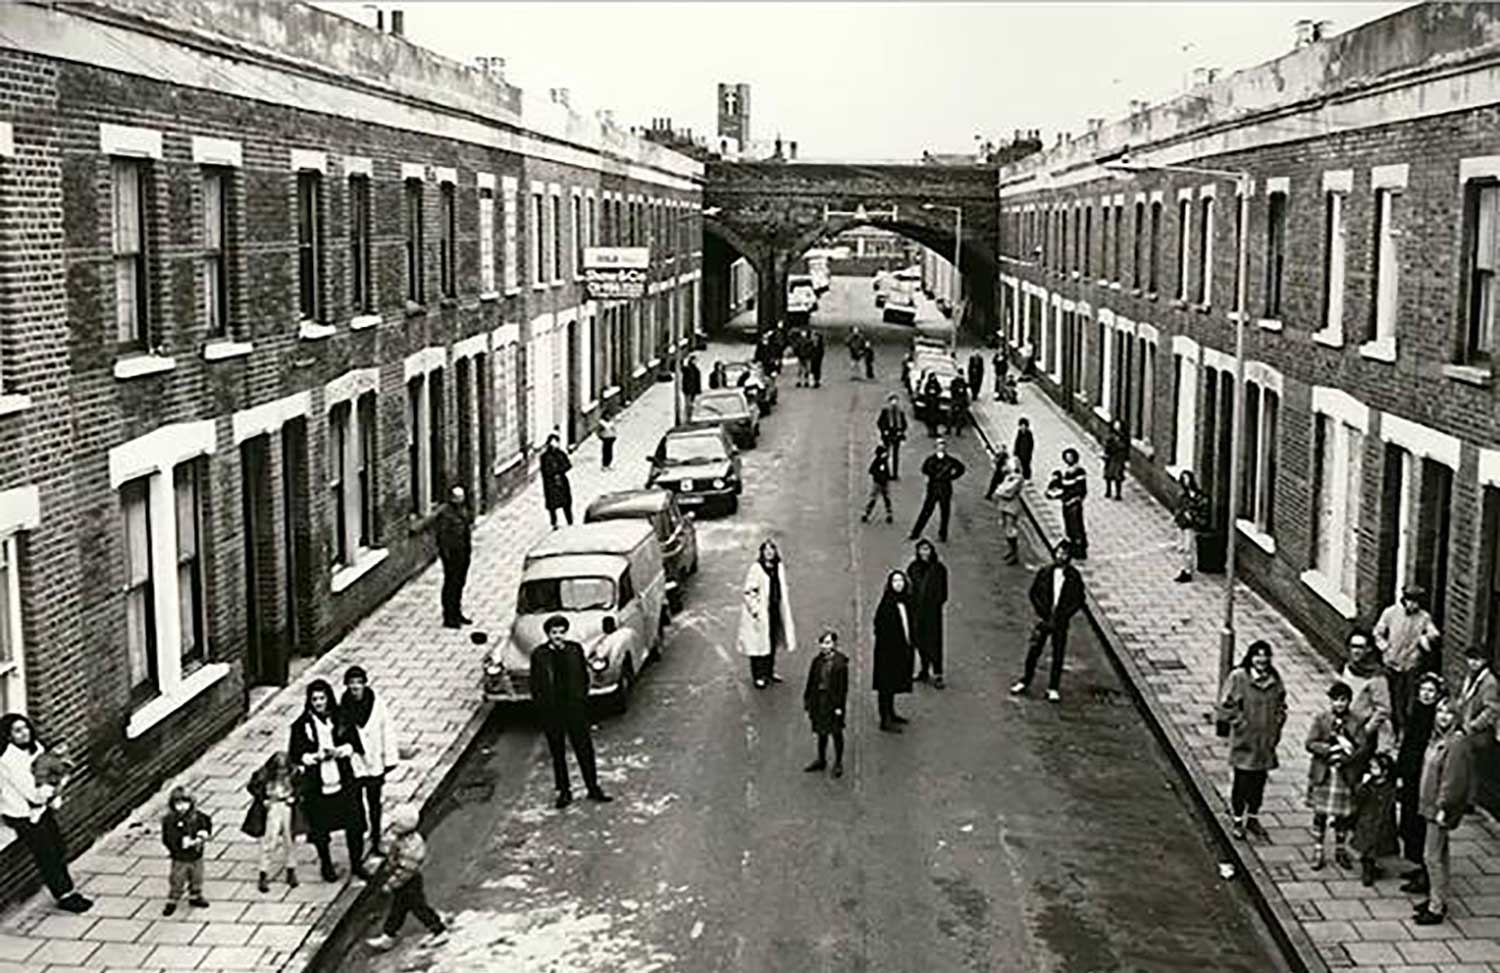 black and white photograph of East London